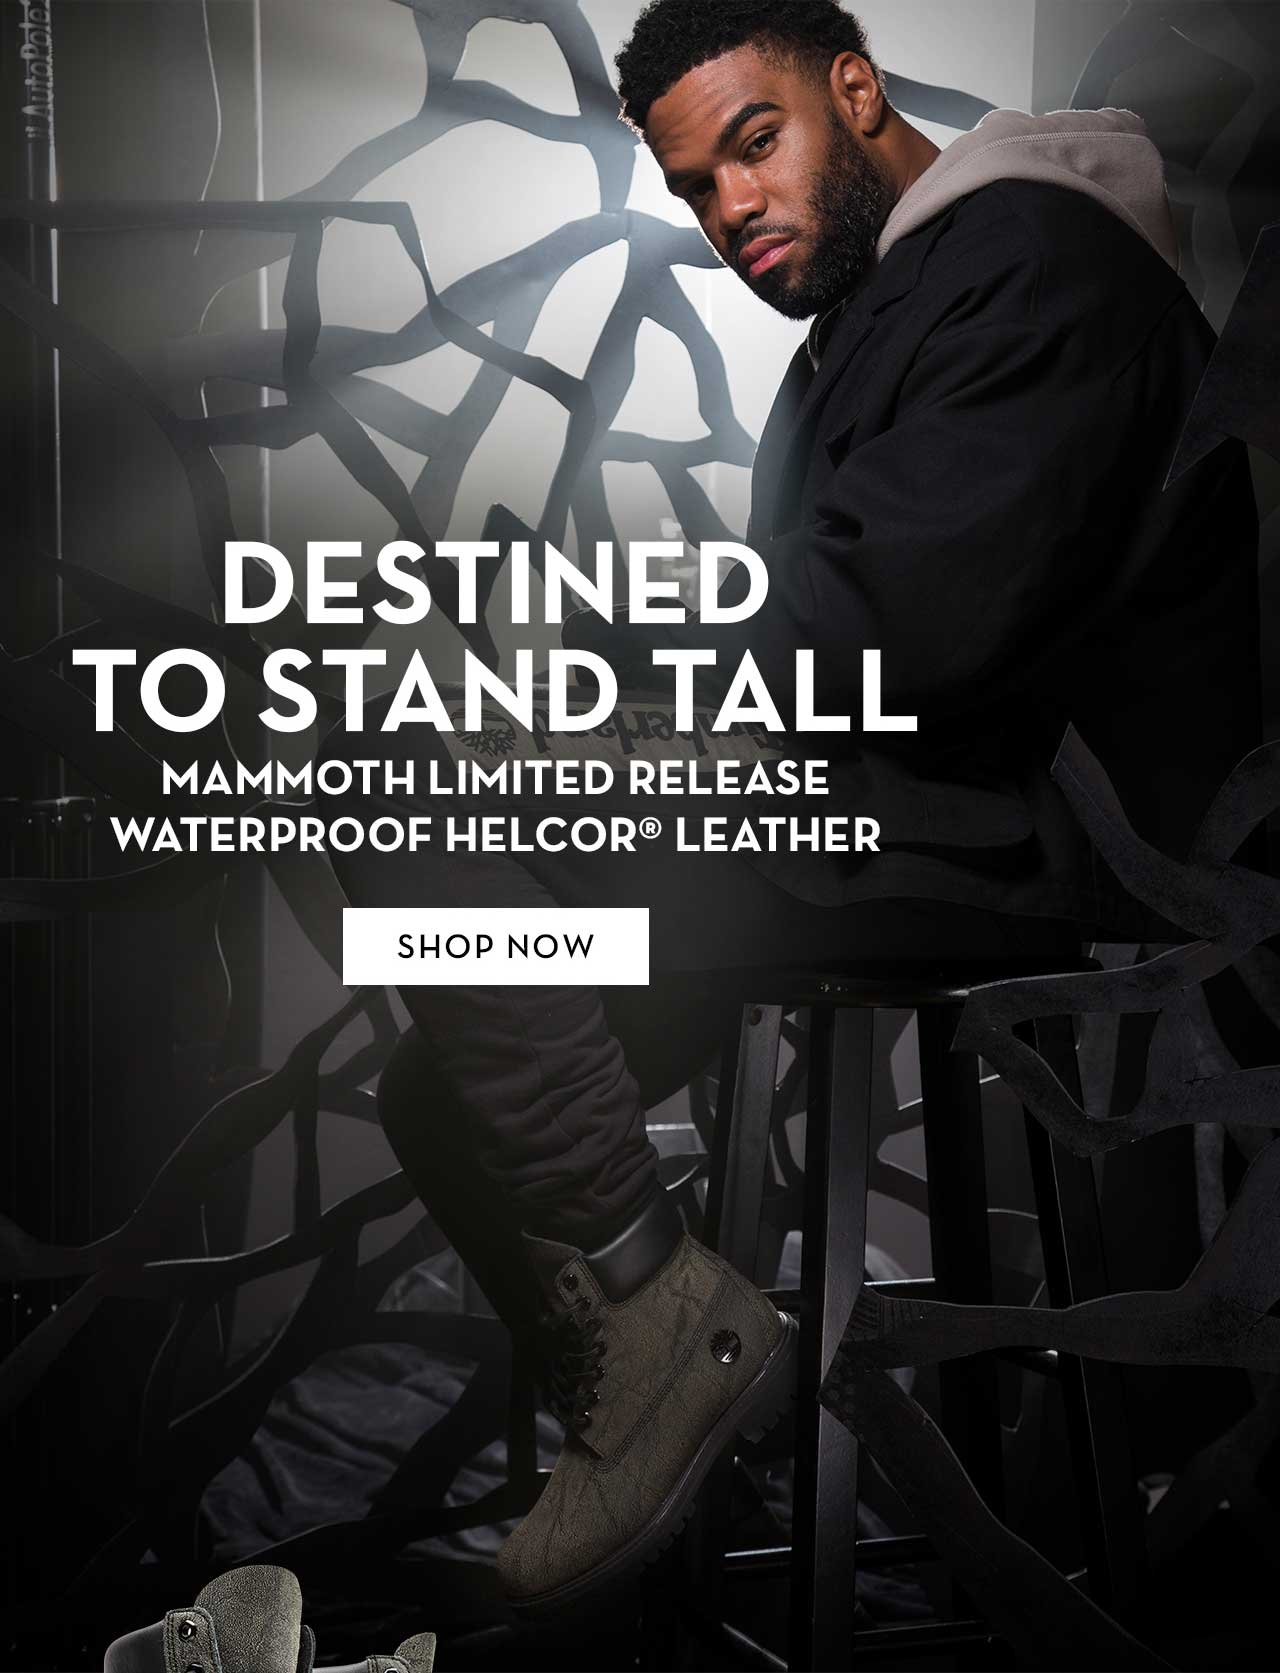 Destined To Stand Tall Mammoth Limited Release Waterproof Helcor Leather Shop Now